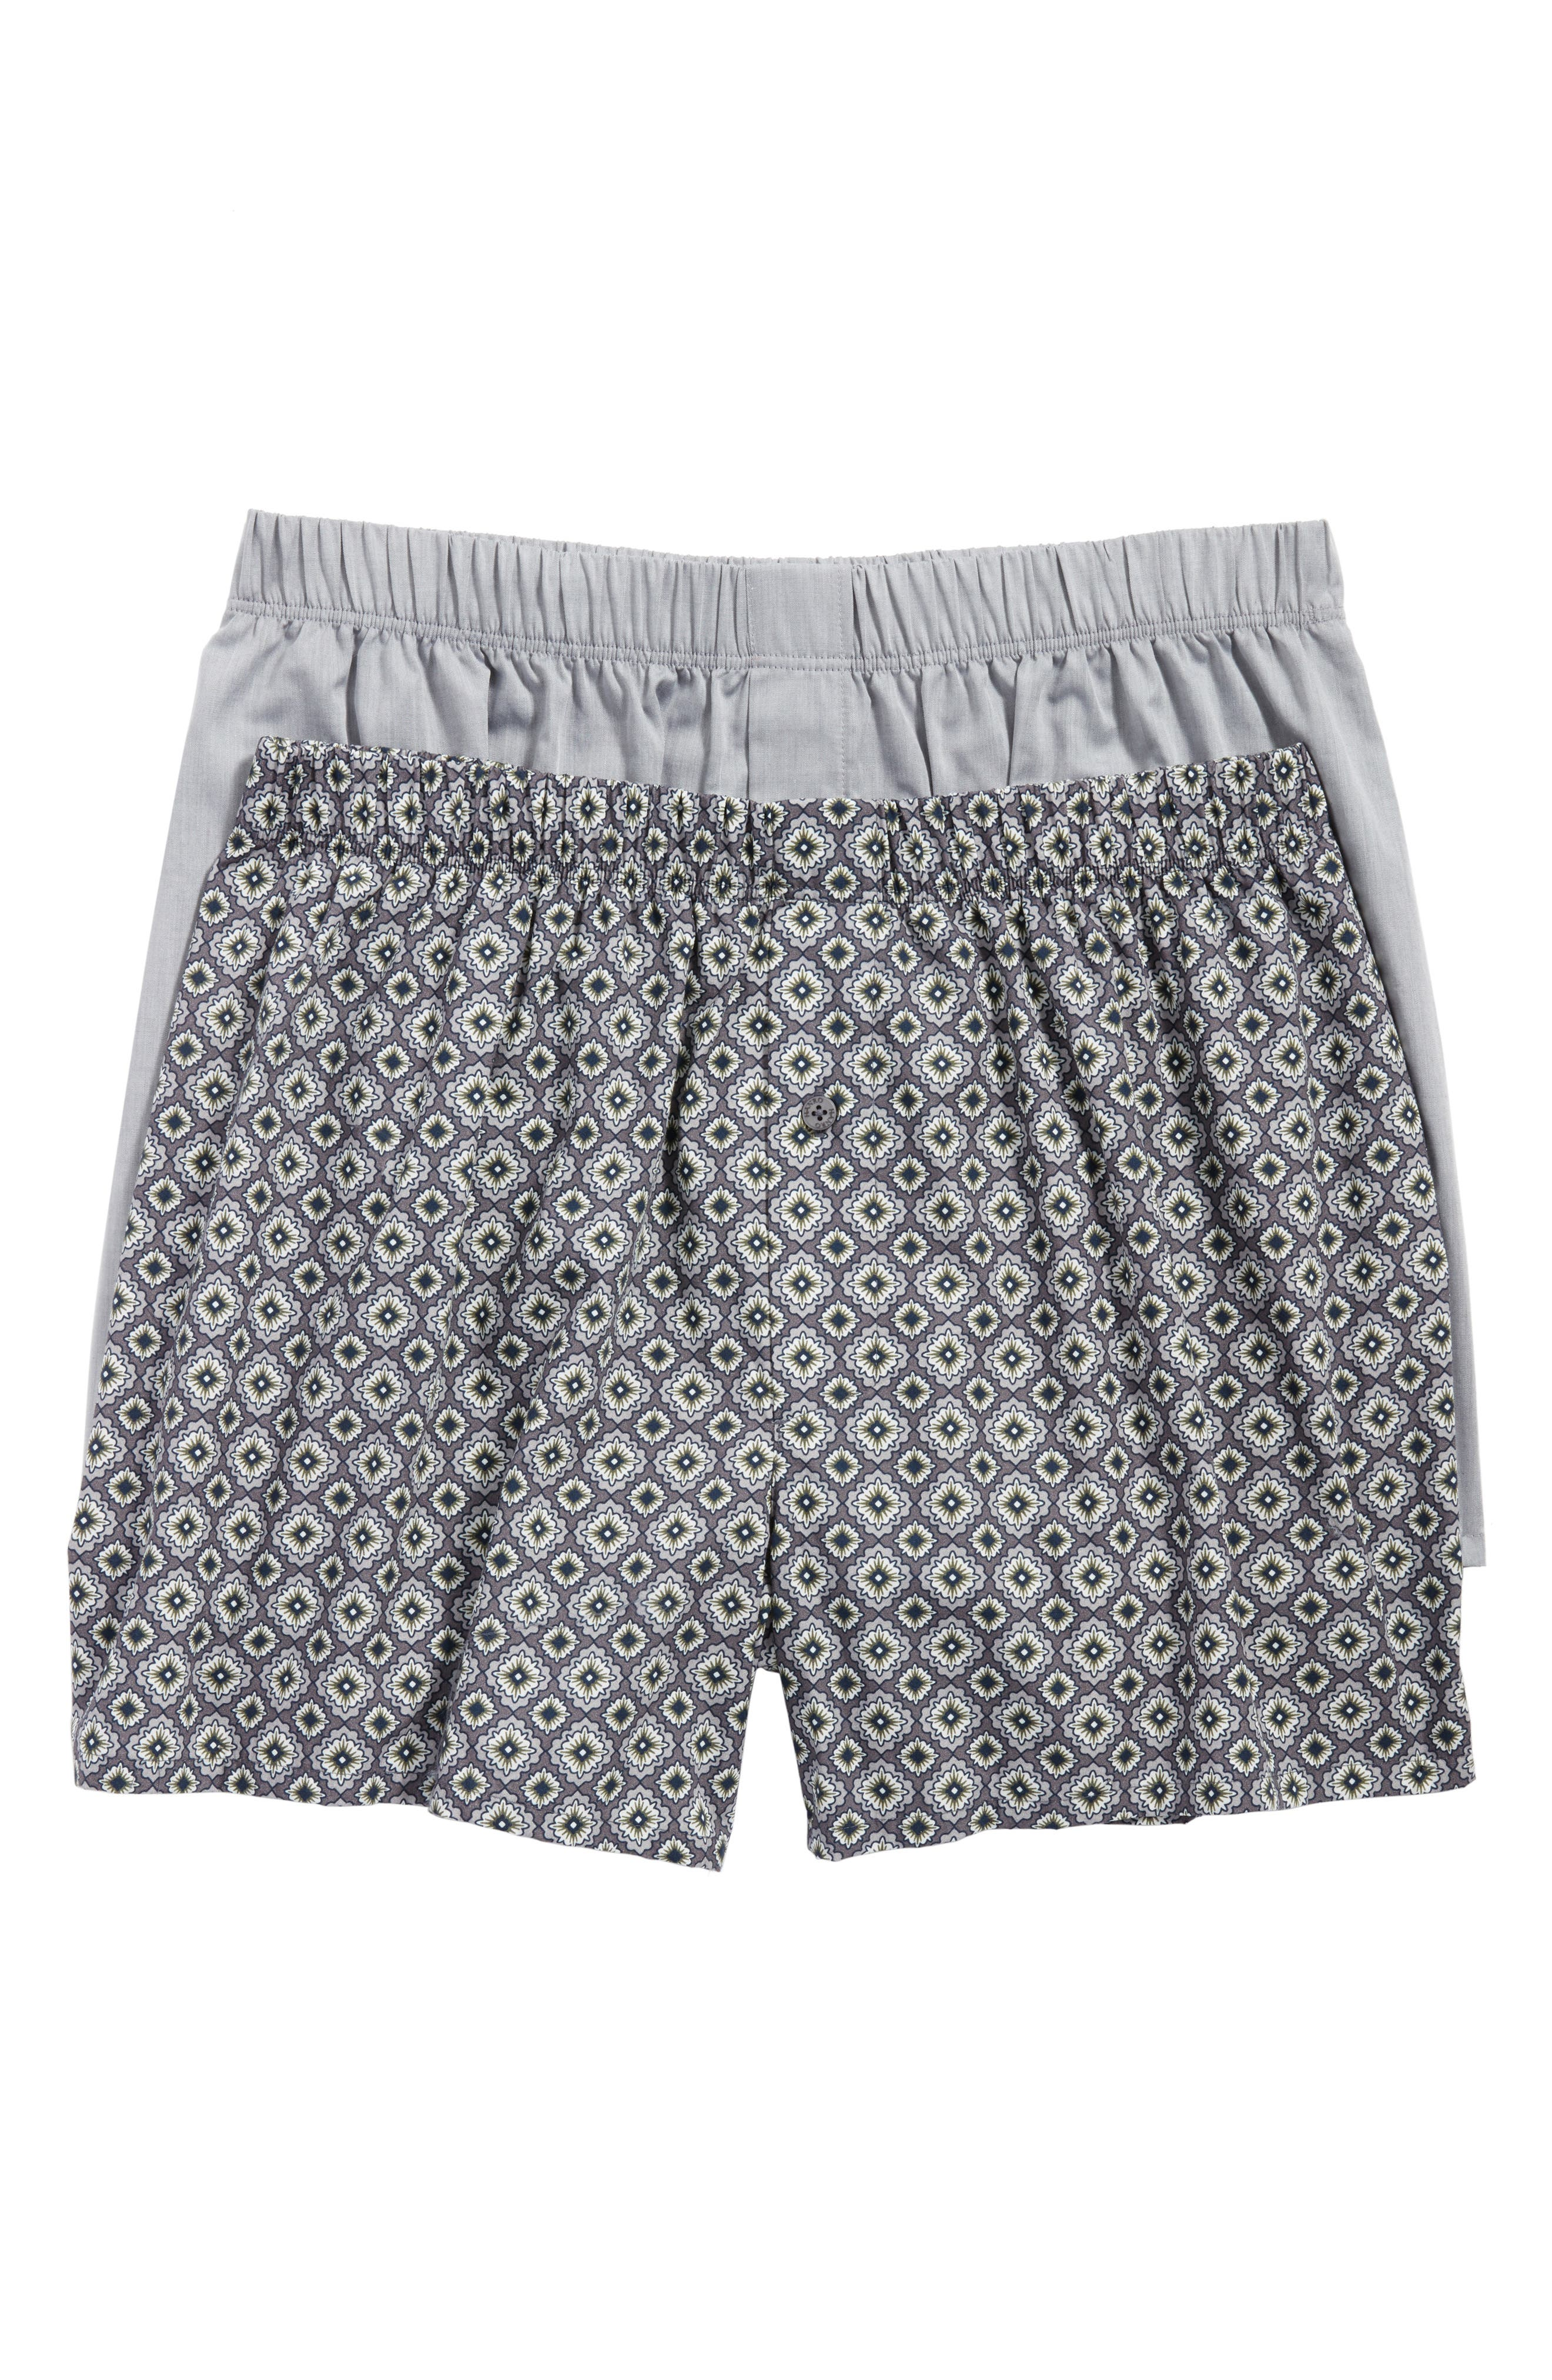 2-Pack Fancy Woven Boxers,                         Main,                         color, Grey/ Squared Flowers